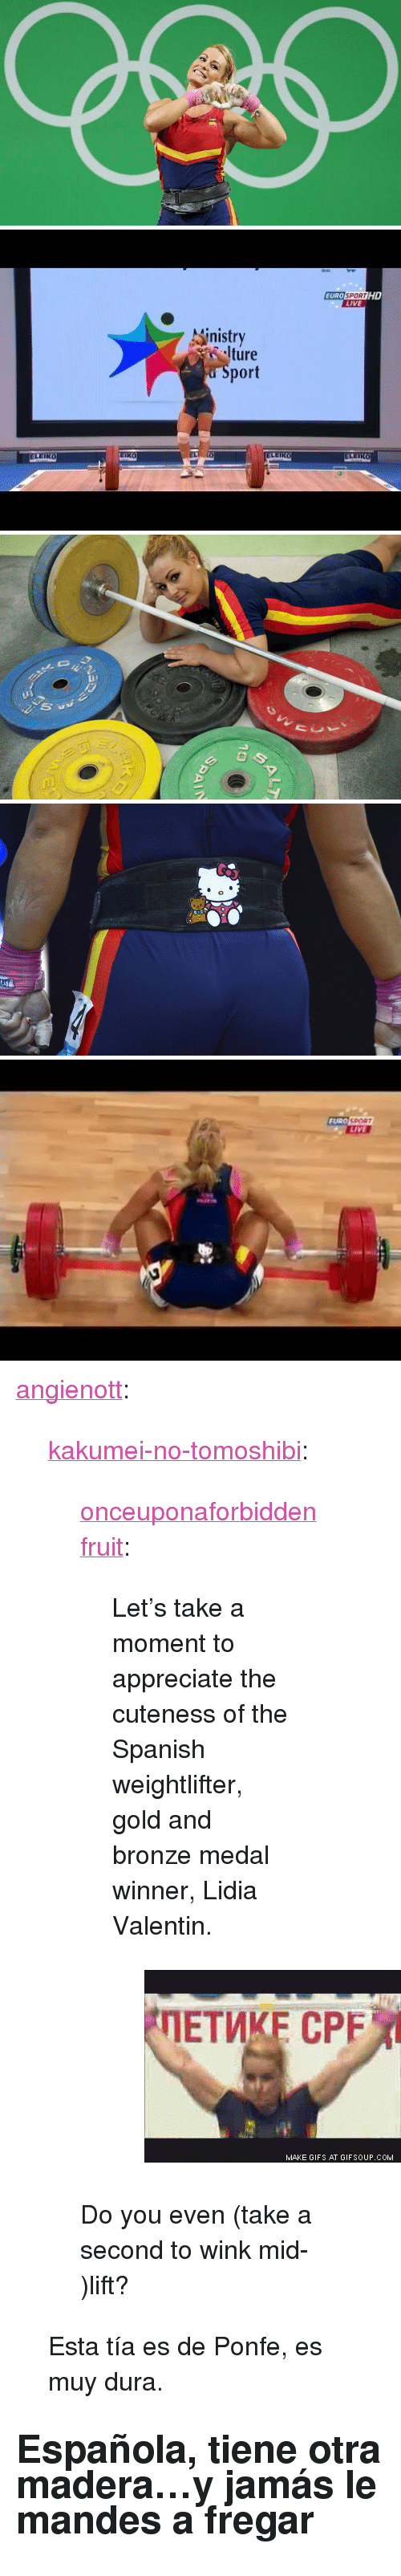 "Gif, Spanish, and Tumblr: EURO SPORTIHD  LIVE  inistry  ture  port  ELEIKO  EIKO   FURO  LIVE <p><a class=""tumblr_blog"" href=""http://angienott.tumblr.com/post/149289722912"">angienott</a>:</p> <blockquote> <p><a class=""tumblr_blog"" href=""http://kakumei-no-tomoshibi.tumblr.com/post/148994710920"">kakumei-no-tomoshibi</a>:</p> <blockquote> <p><a class=""tumblr_blog"" href=""http://onceuponaforbiddenfruit.tumblr.com/post/148925547154"">onceuponaforbiddenfruit</a>:</p> <blockquote> <p>Let's take a moment to appreciate the cuteness of the Spanish weightlifter, gold and bronze medal winner, Lidia Valentin. </p> <figure data-orig-width=""320"" data-orig-height=""240"" class=""tmblr-full""><img src=""https://78.media.tumblr.com/106f8aa9a863e751862541beb3b3b91f/tumblr_inline_obwabclK781upwyts_500.gif"" alt=""image"" data-orig-width=""320"" data-orig-height=""240""/></figure></blockquote> <p>Do you even (take a second to wink mid-)lift?</p> </blockquote> <p>Esta tía es de Ponfe, es muy dura.</p> </blockquote>  <h2>Española, tiene otra madera&hellip;y jamás le mandes a fregar</h2>"